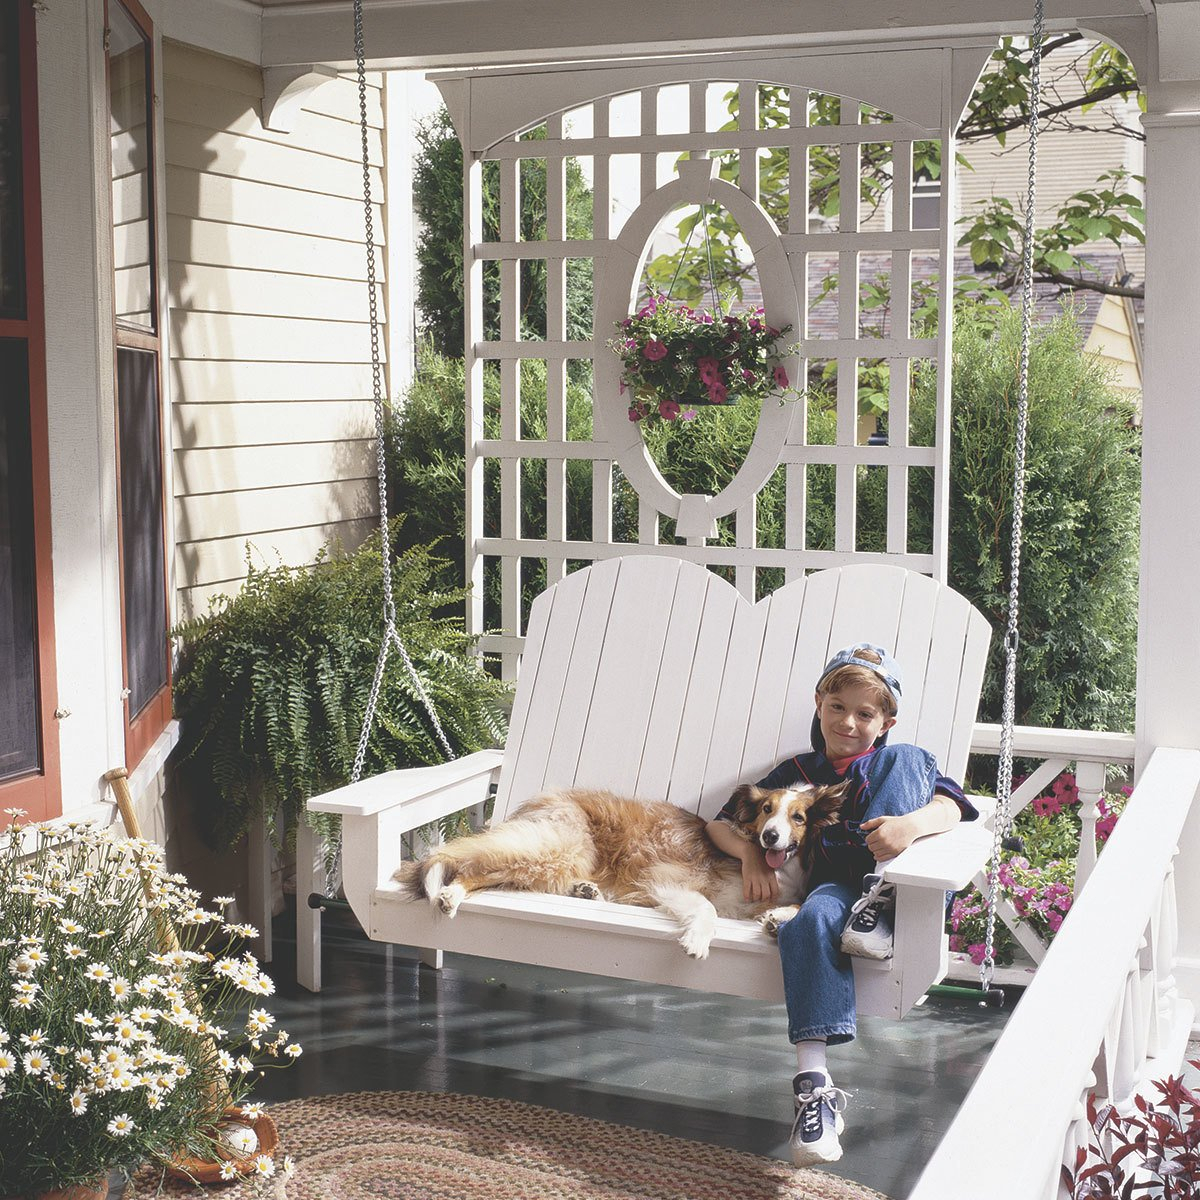 10 Pretty Porch Swings – The Family Handyman In Canopy Patio Porch Swings With Pillows And Cup Holders (View 21 of 25)